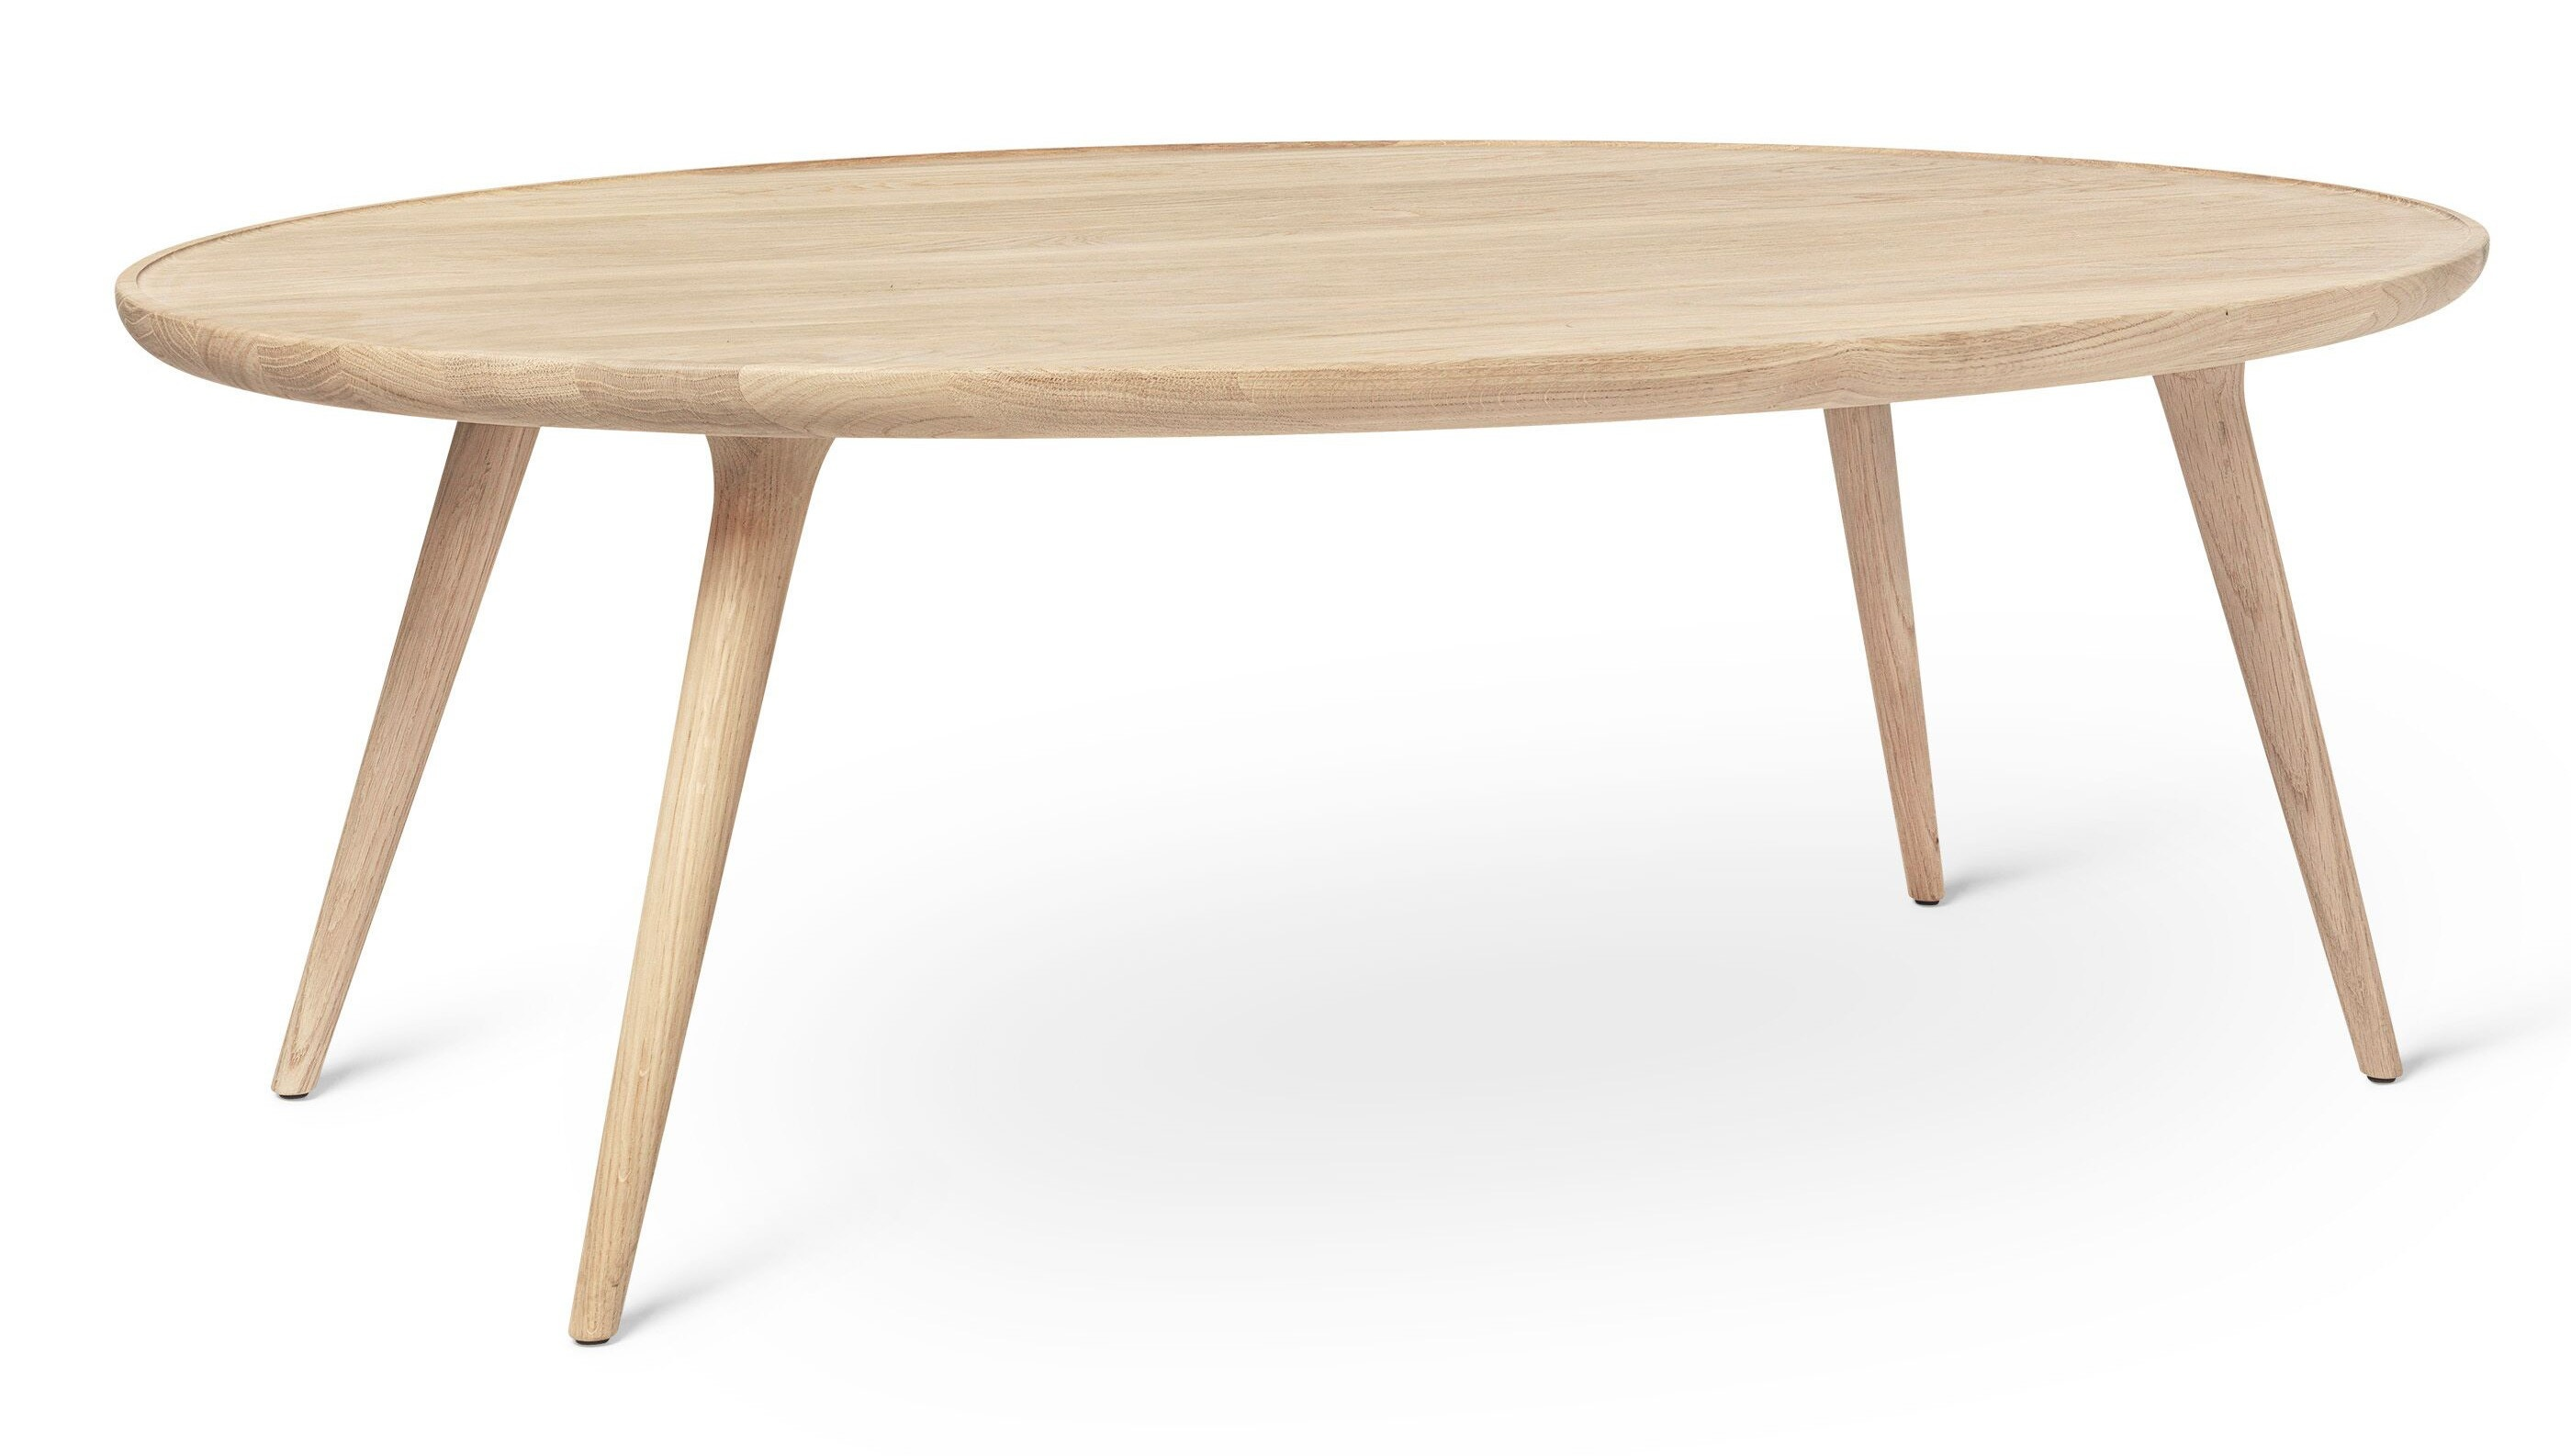 Mater Accent Oval Lounge Table - Mat Lacqured Oak